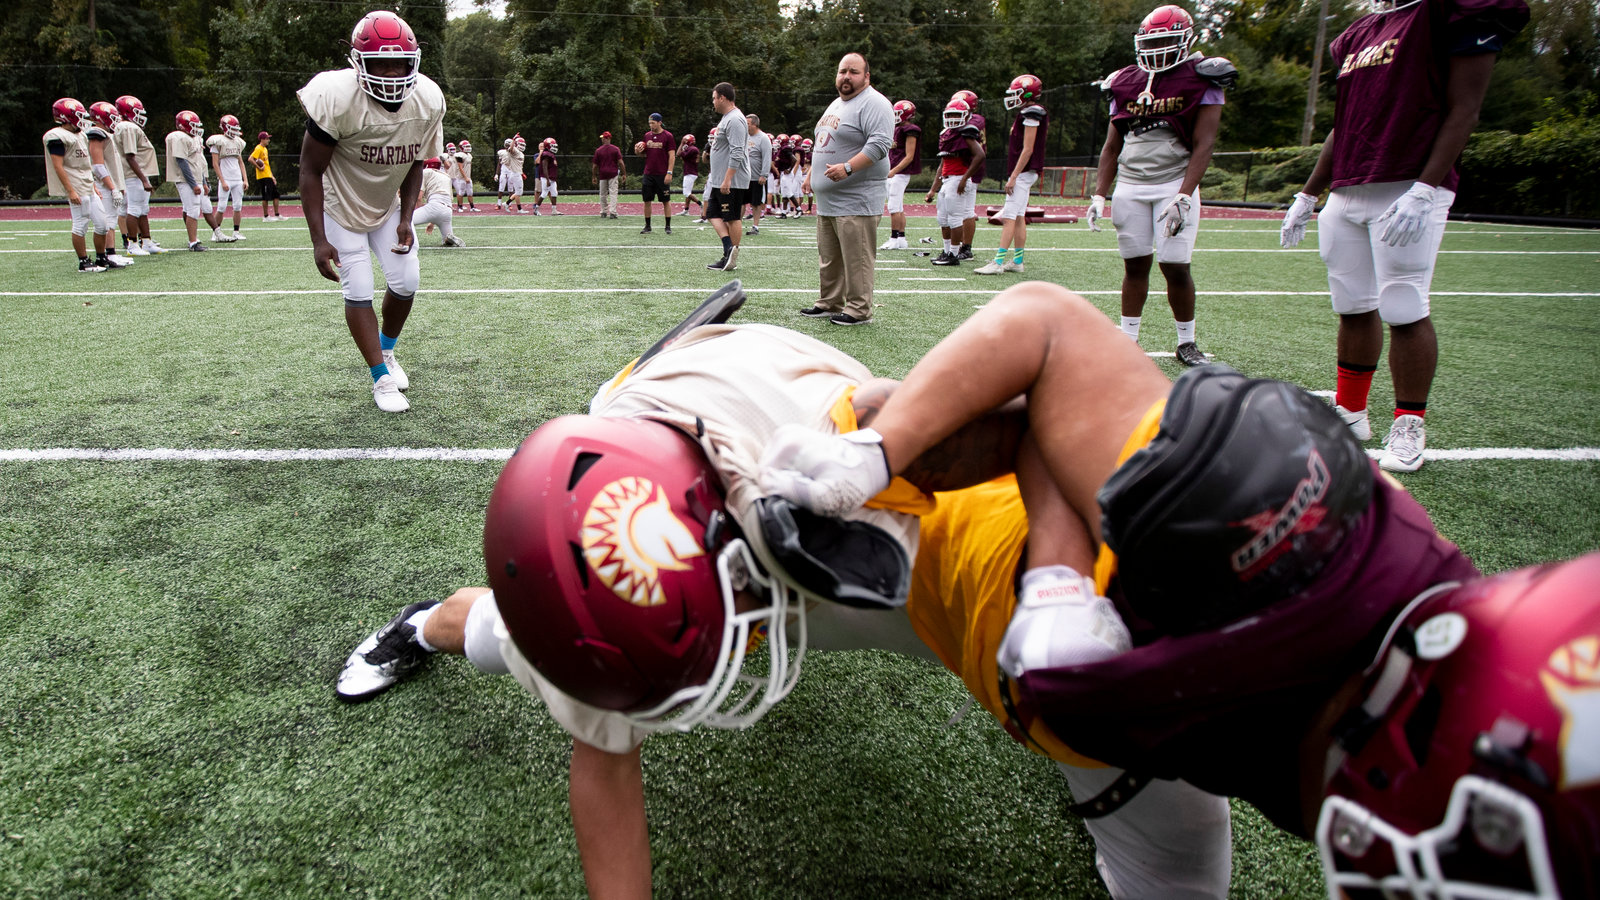 A College Started A Tackle Football Team For Little Guys